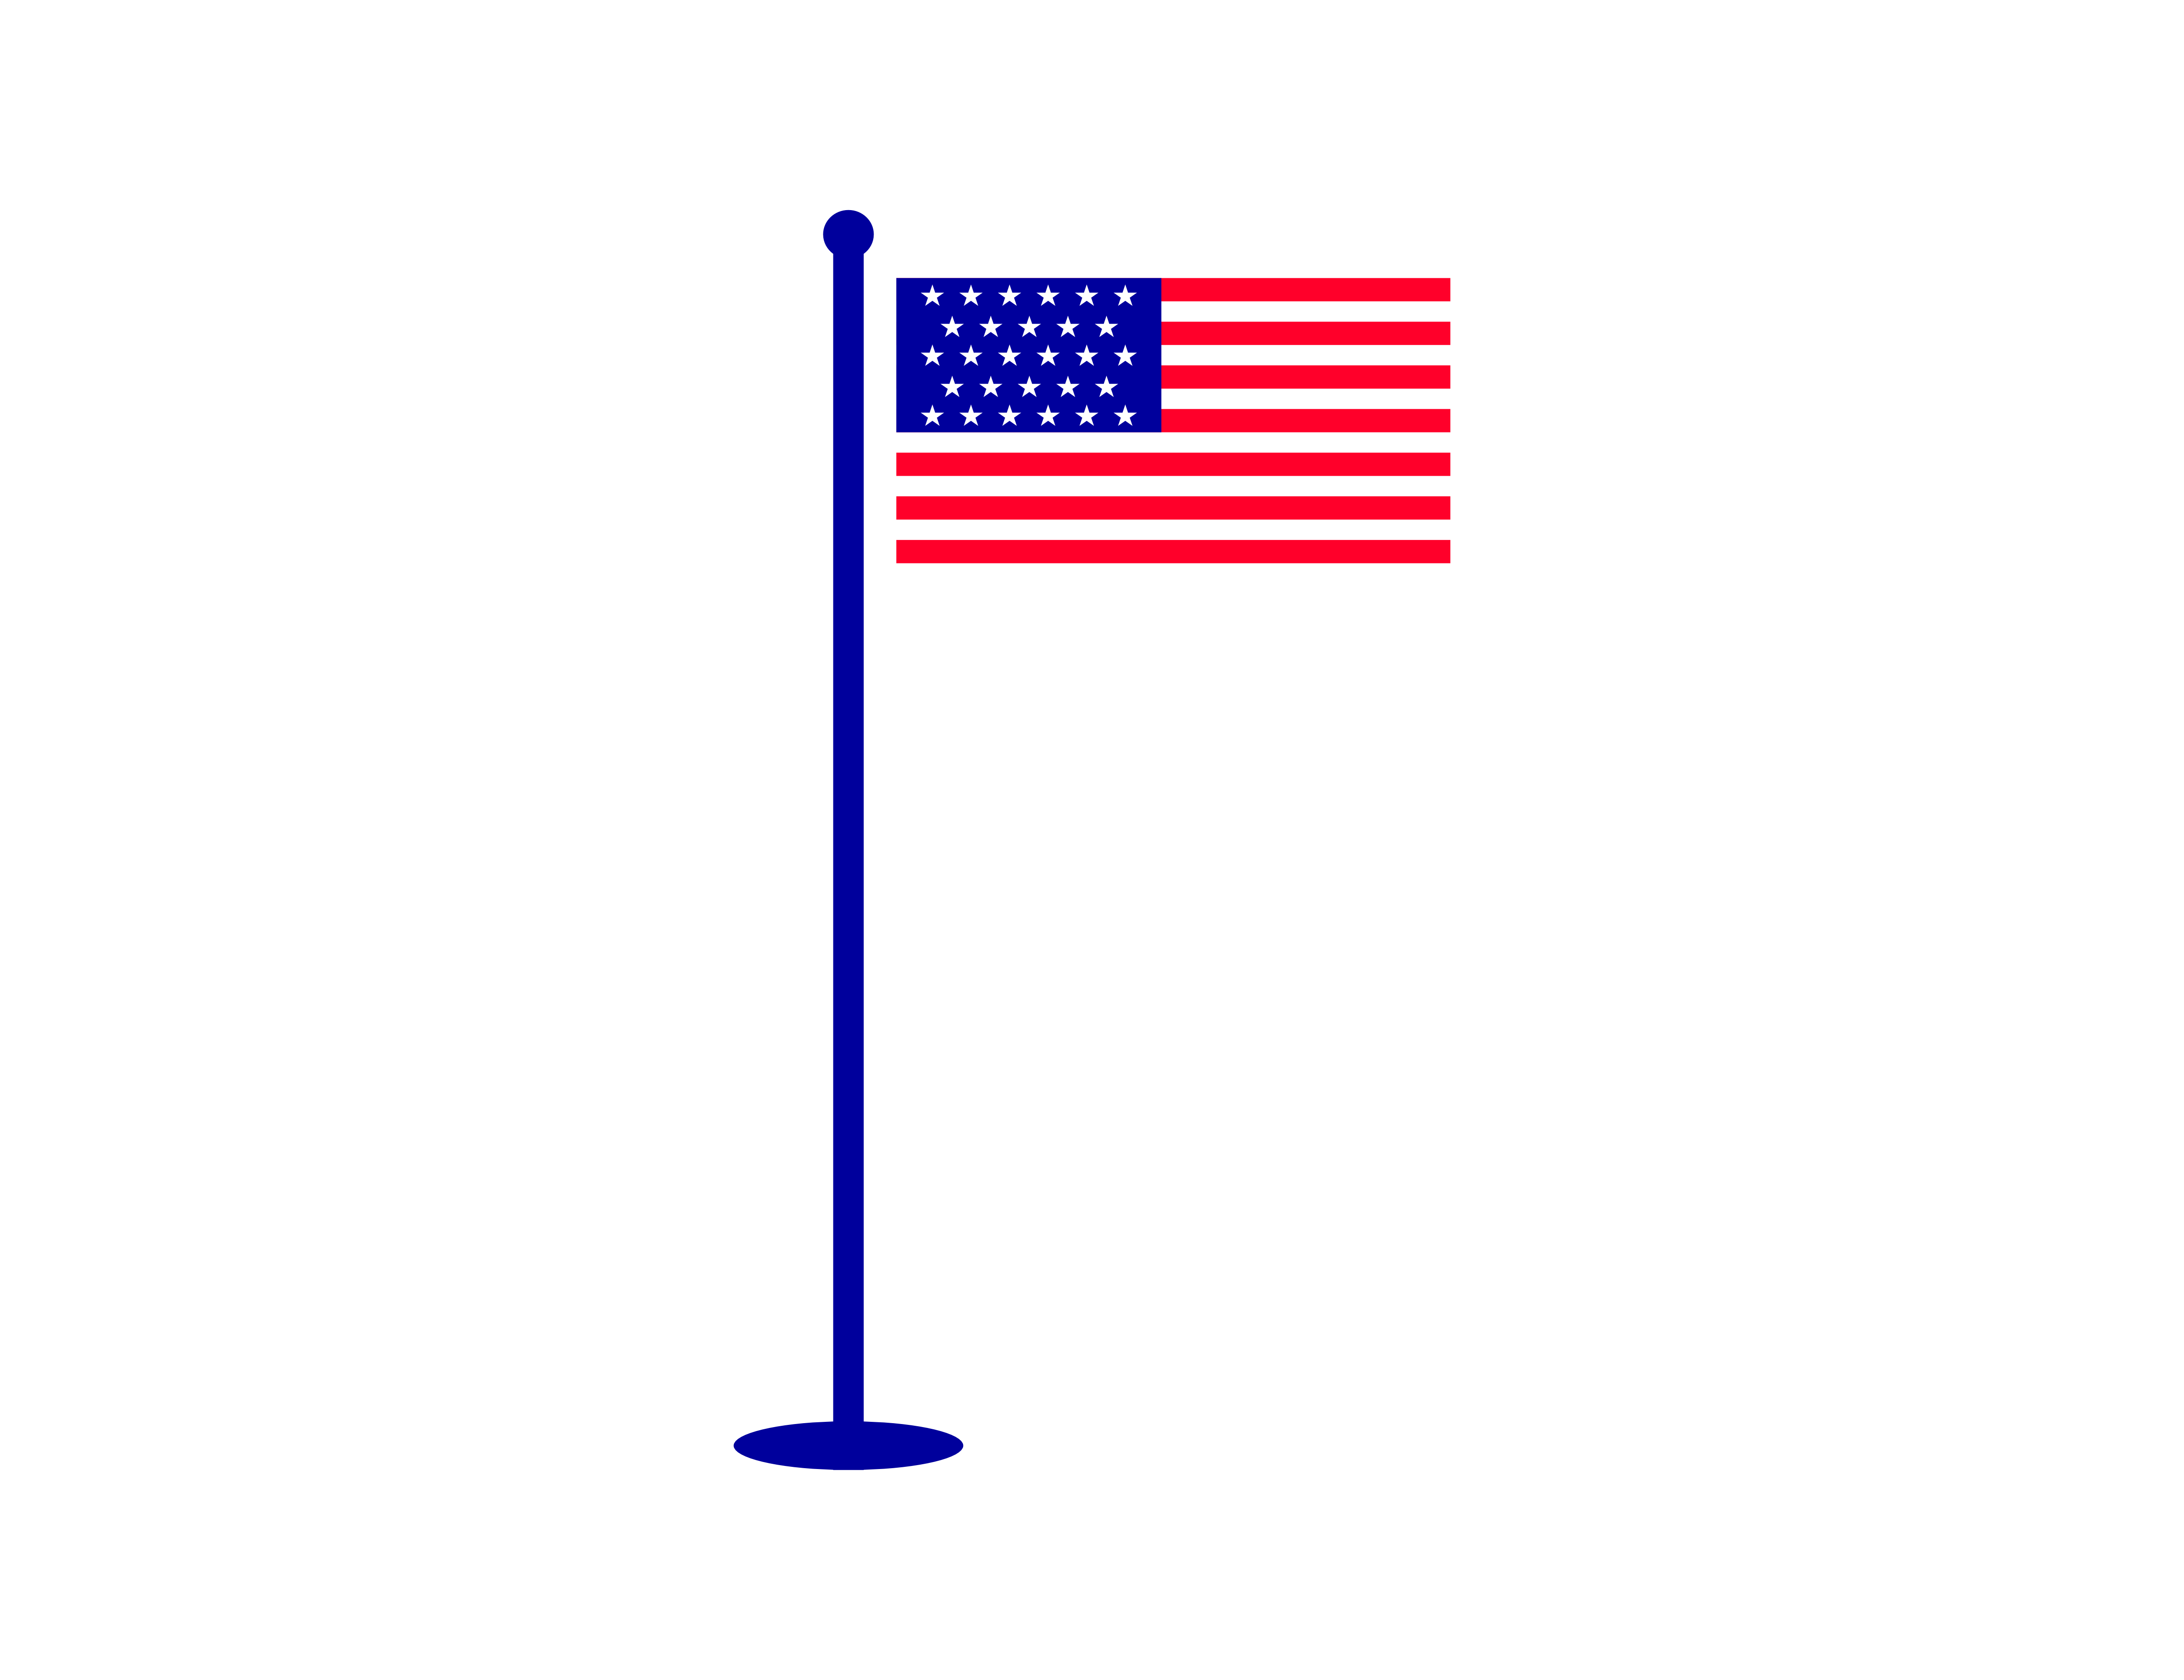 American Flag Vector Illustration Graphic By Meisuseno